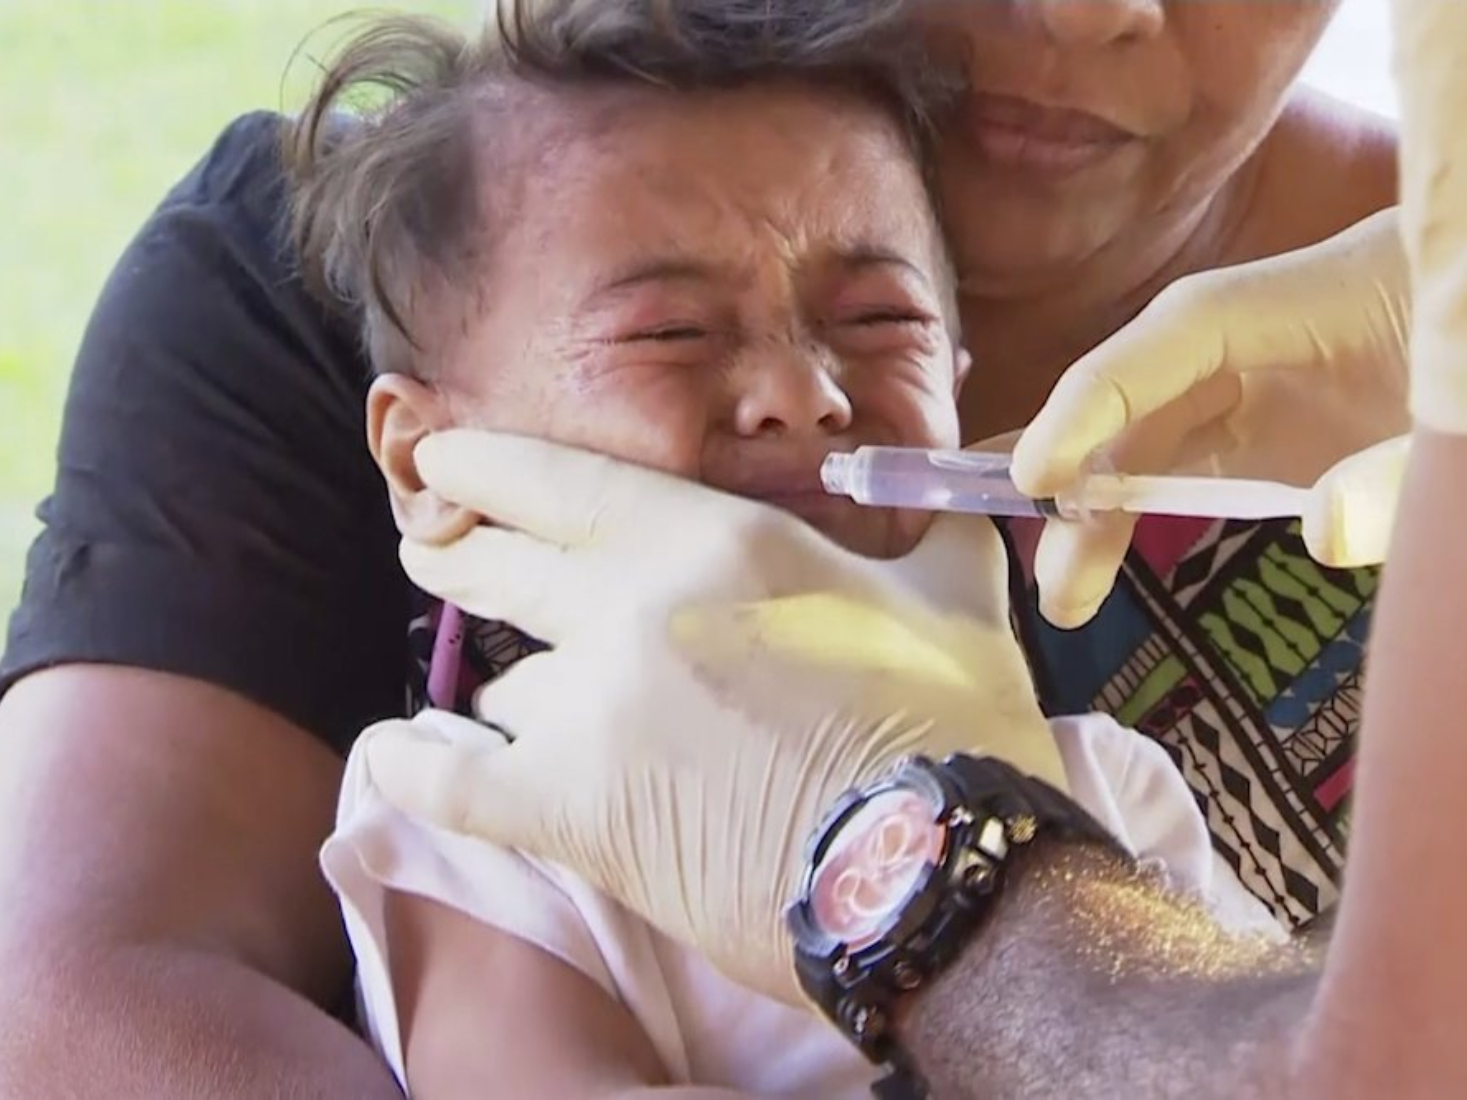 Death toll of measles climbs to 48 in Samoa